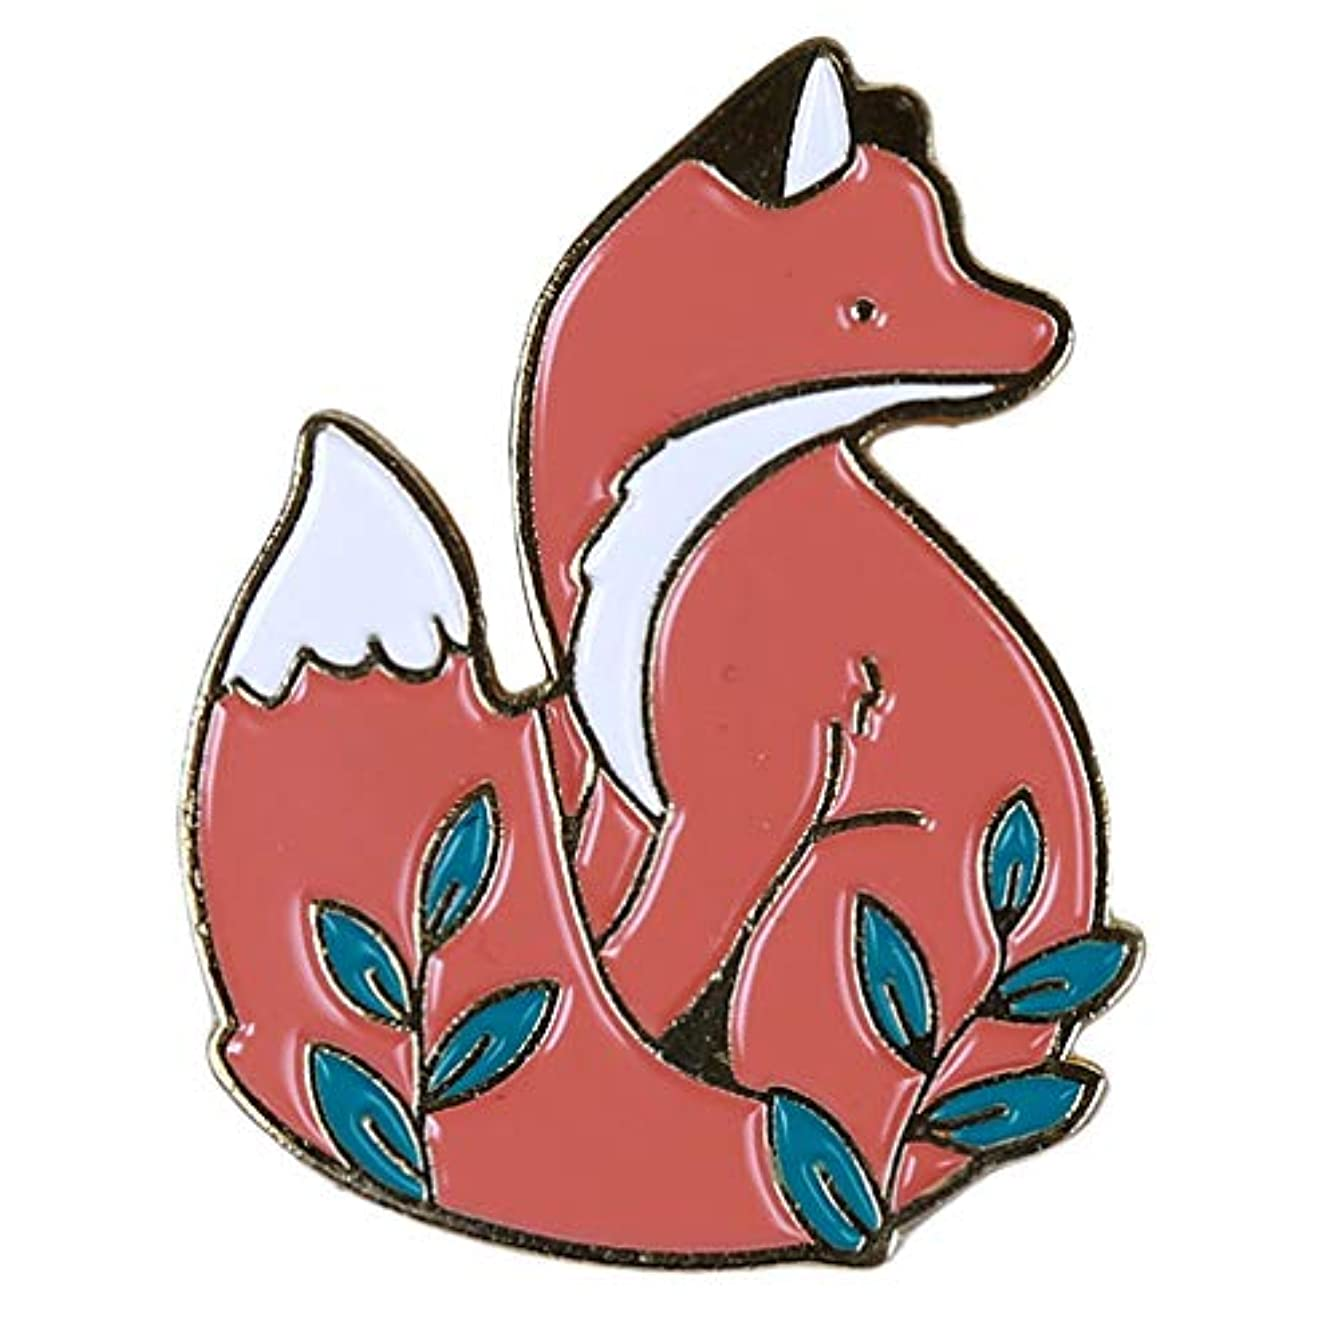 Guoshang Brooch Pins Cute Animal Fox Enamel Pin Brooch Pin Christmas Cute Animal Fox Brooch Pin Lapel Shirt Clothing Badges Brooches Jewelry Brooches for Women Men Accessory